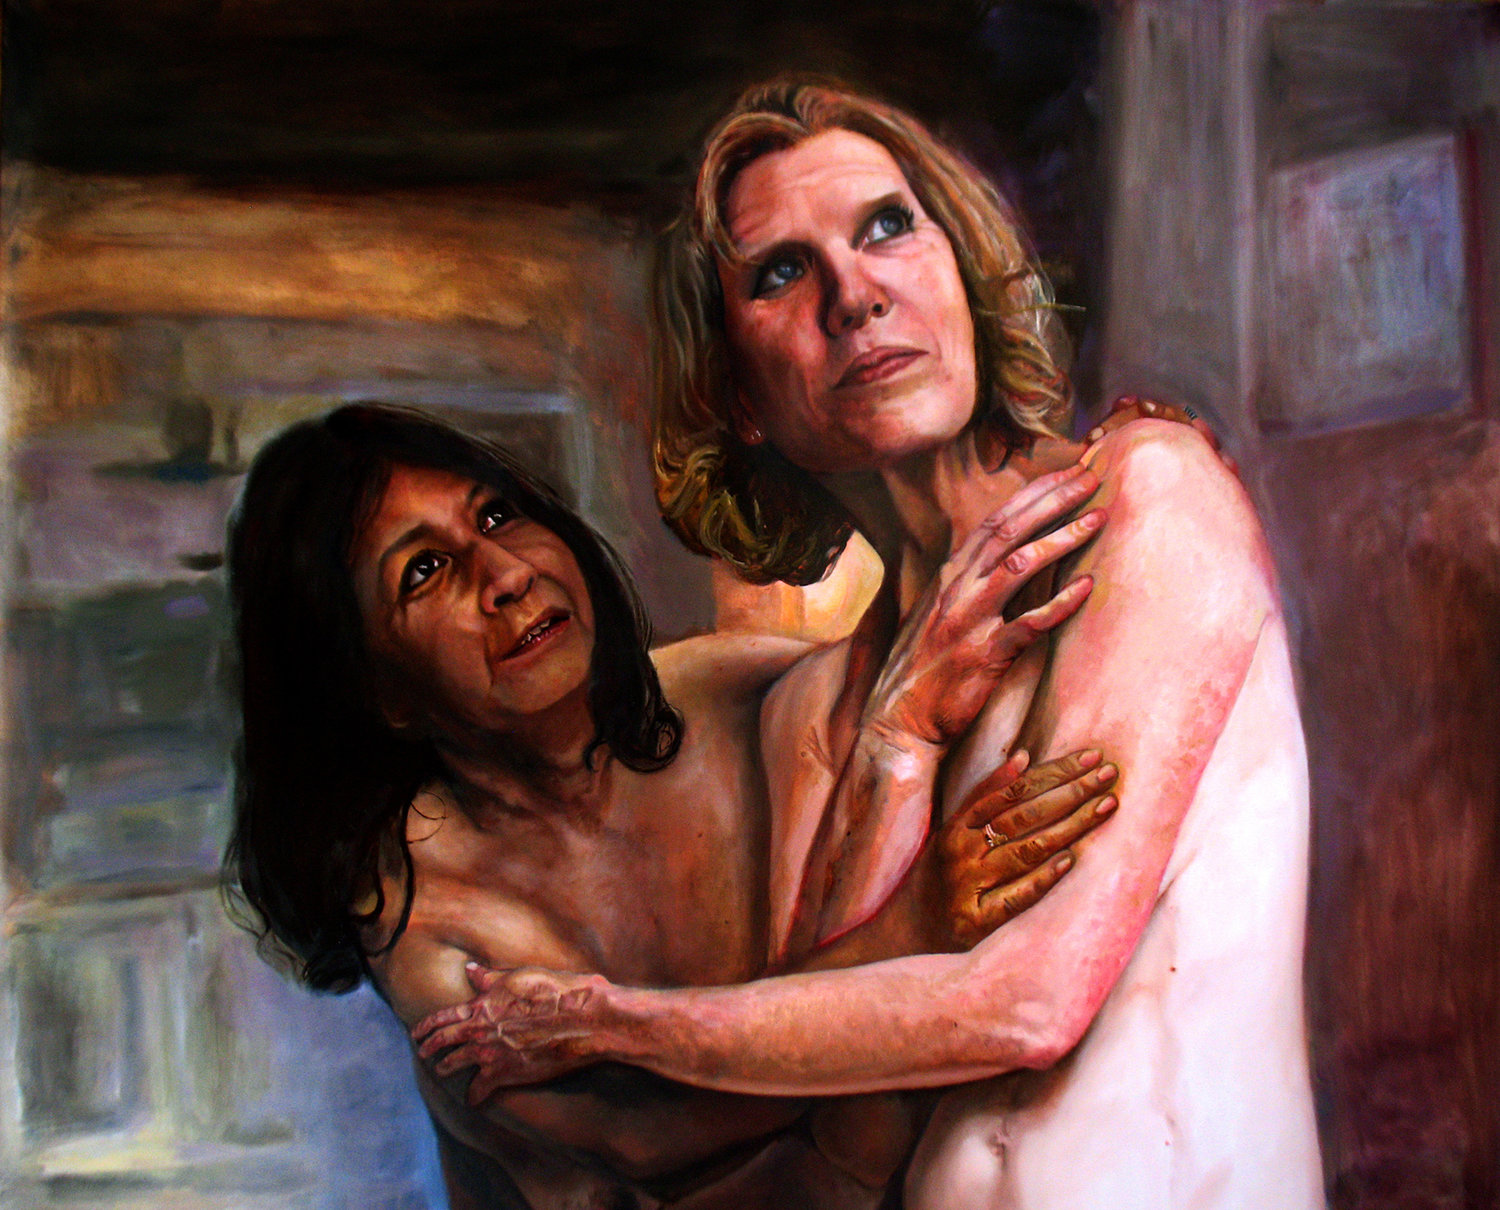 'Lola and Karima 3', Natalia Glinoer, Oil on linen, 174 x 143 x 3 cm